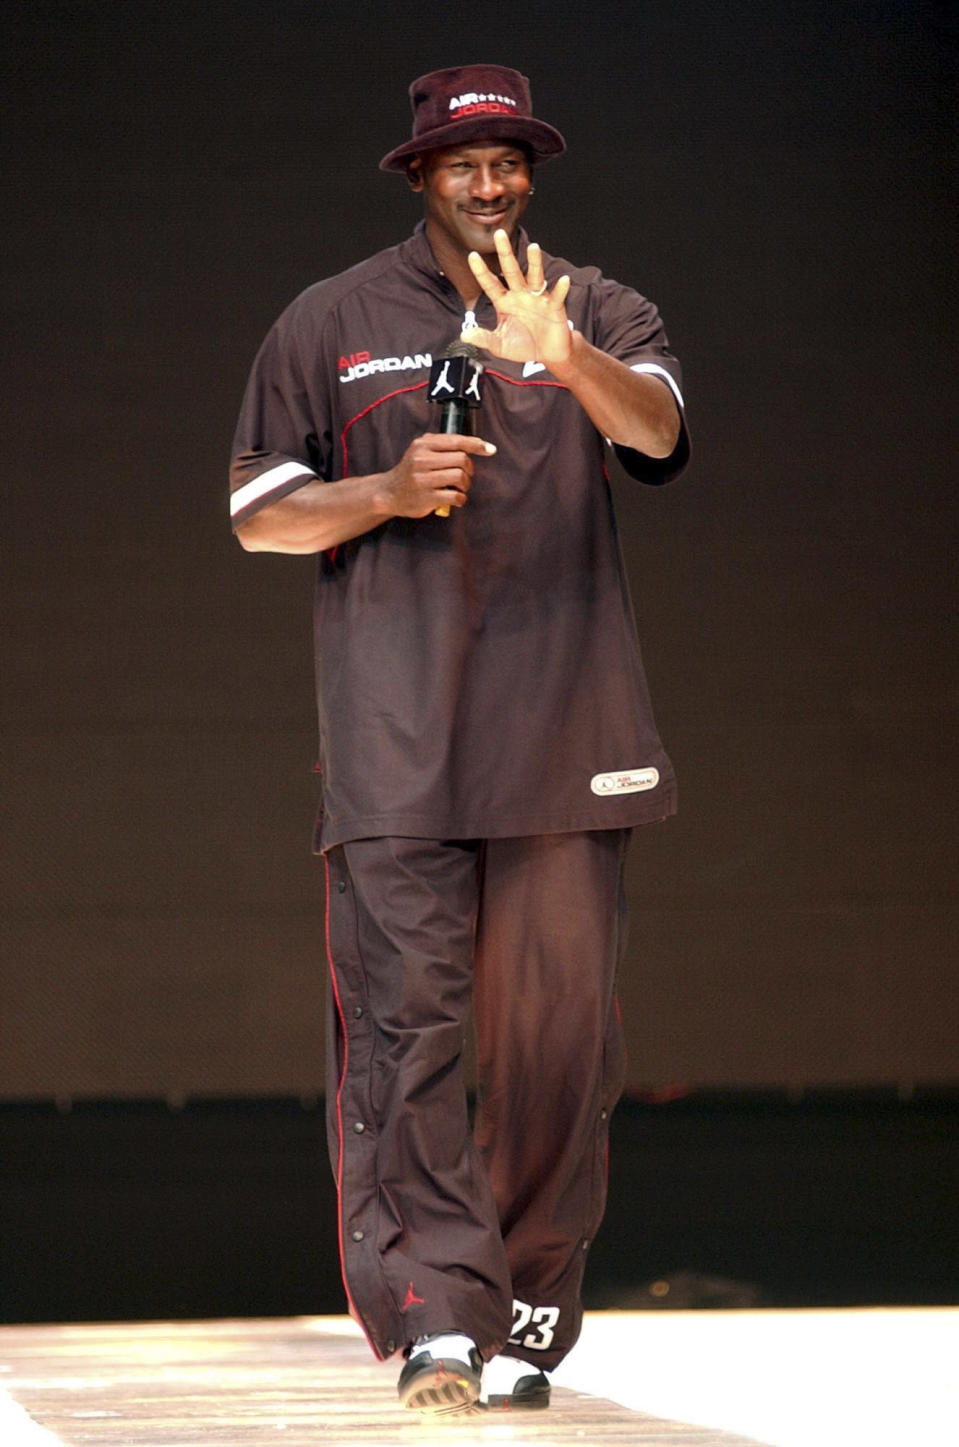 Michael Jordan waves to fans during an event to promote his brand-name sportswear, on May 22, 2004, in Taipei, Taiwan. (AP Photo/Jerome Favre)